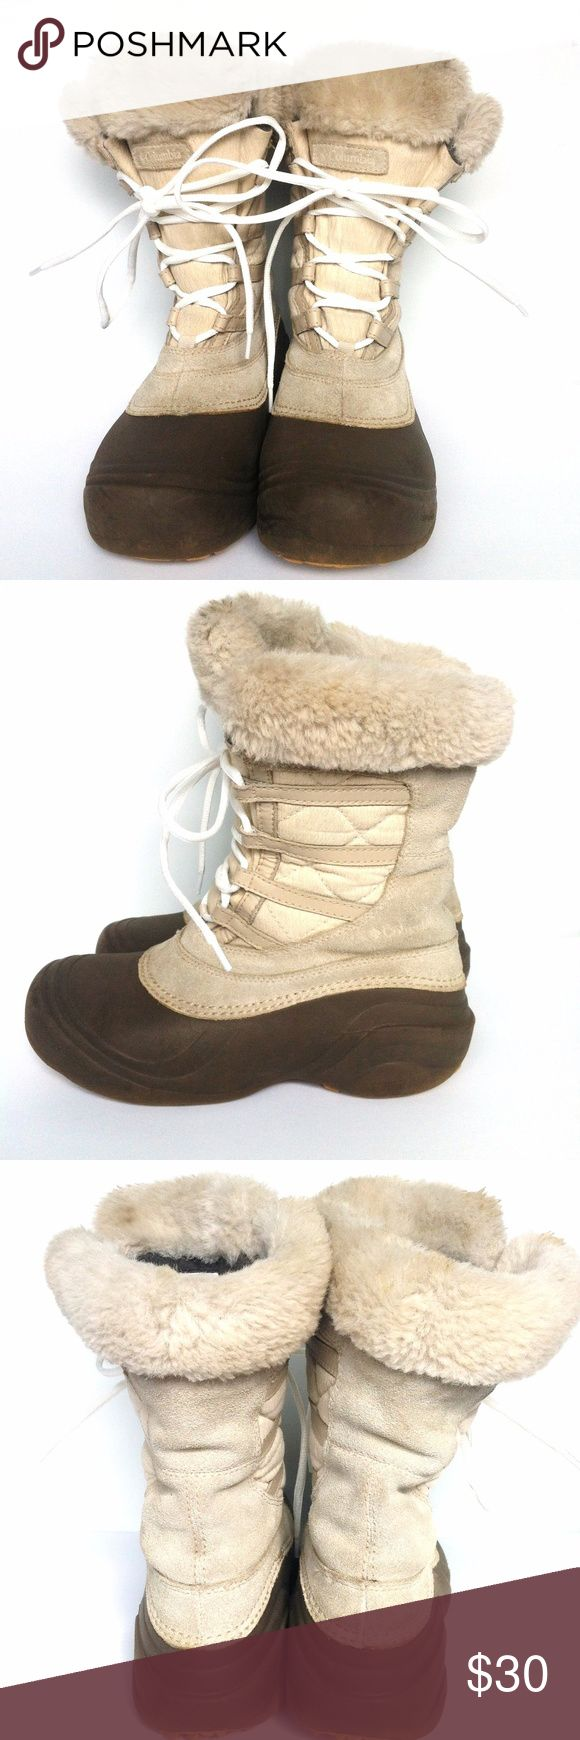 """Columbia Sierra Summette 2 Wp Cold Weather Boots FITS LIKE A SZ 6! Leather &  textile Rubber sole Shaft measures approximately 8.25"""" from arch Heel measures approximately 1.5"""" Waterproof leather and textile with Omni-Shield advanced repellency for stain and water protection Molded nylon shank provides torsional rigidity and support Techlite molded material provides cushion & protection in a lightweight and flexible shell Non-marking Omni-Grip rubber compound with a winter specific lug tread…"""